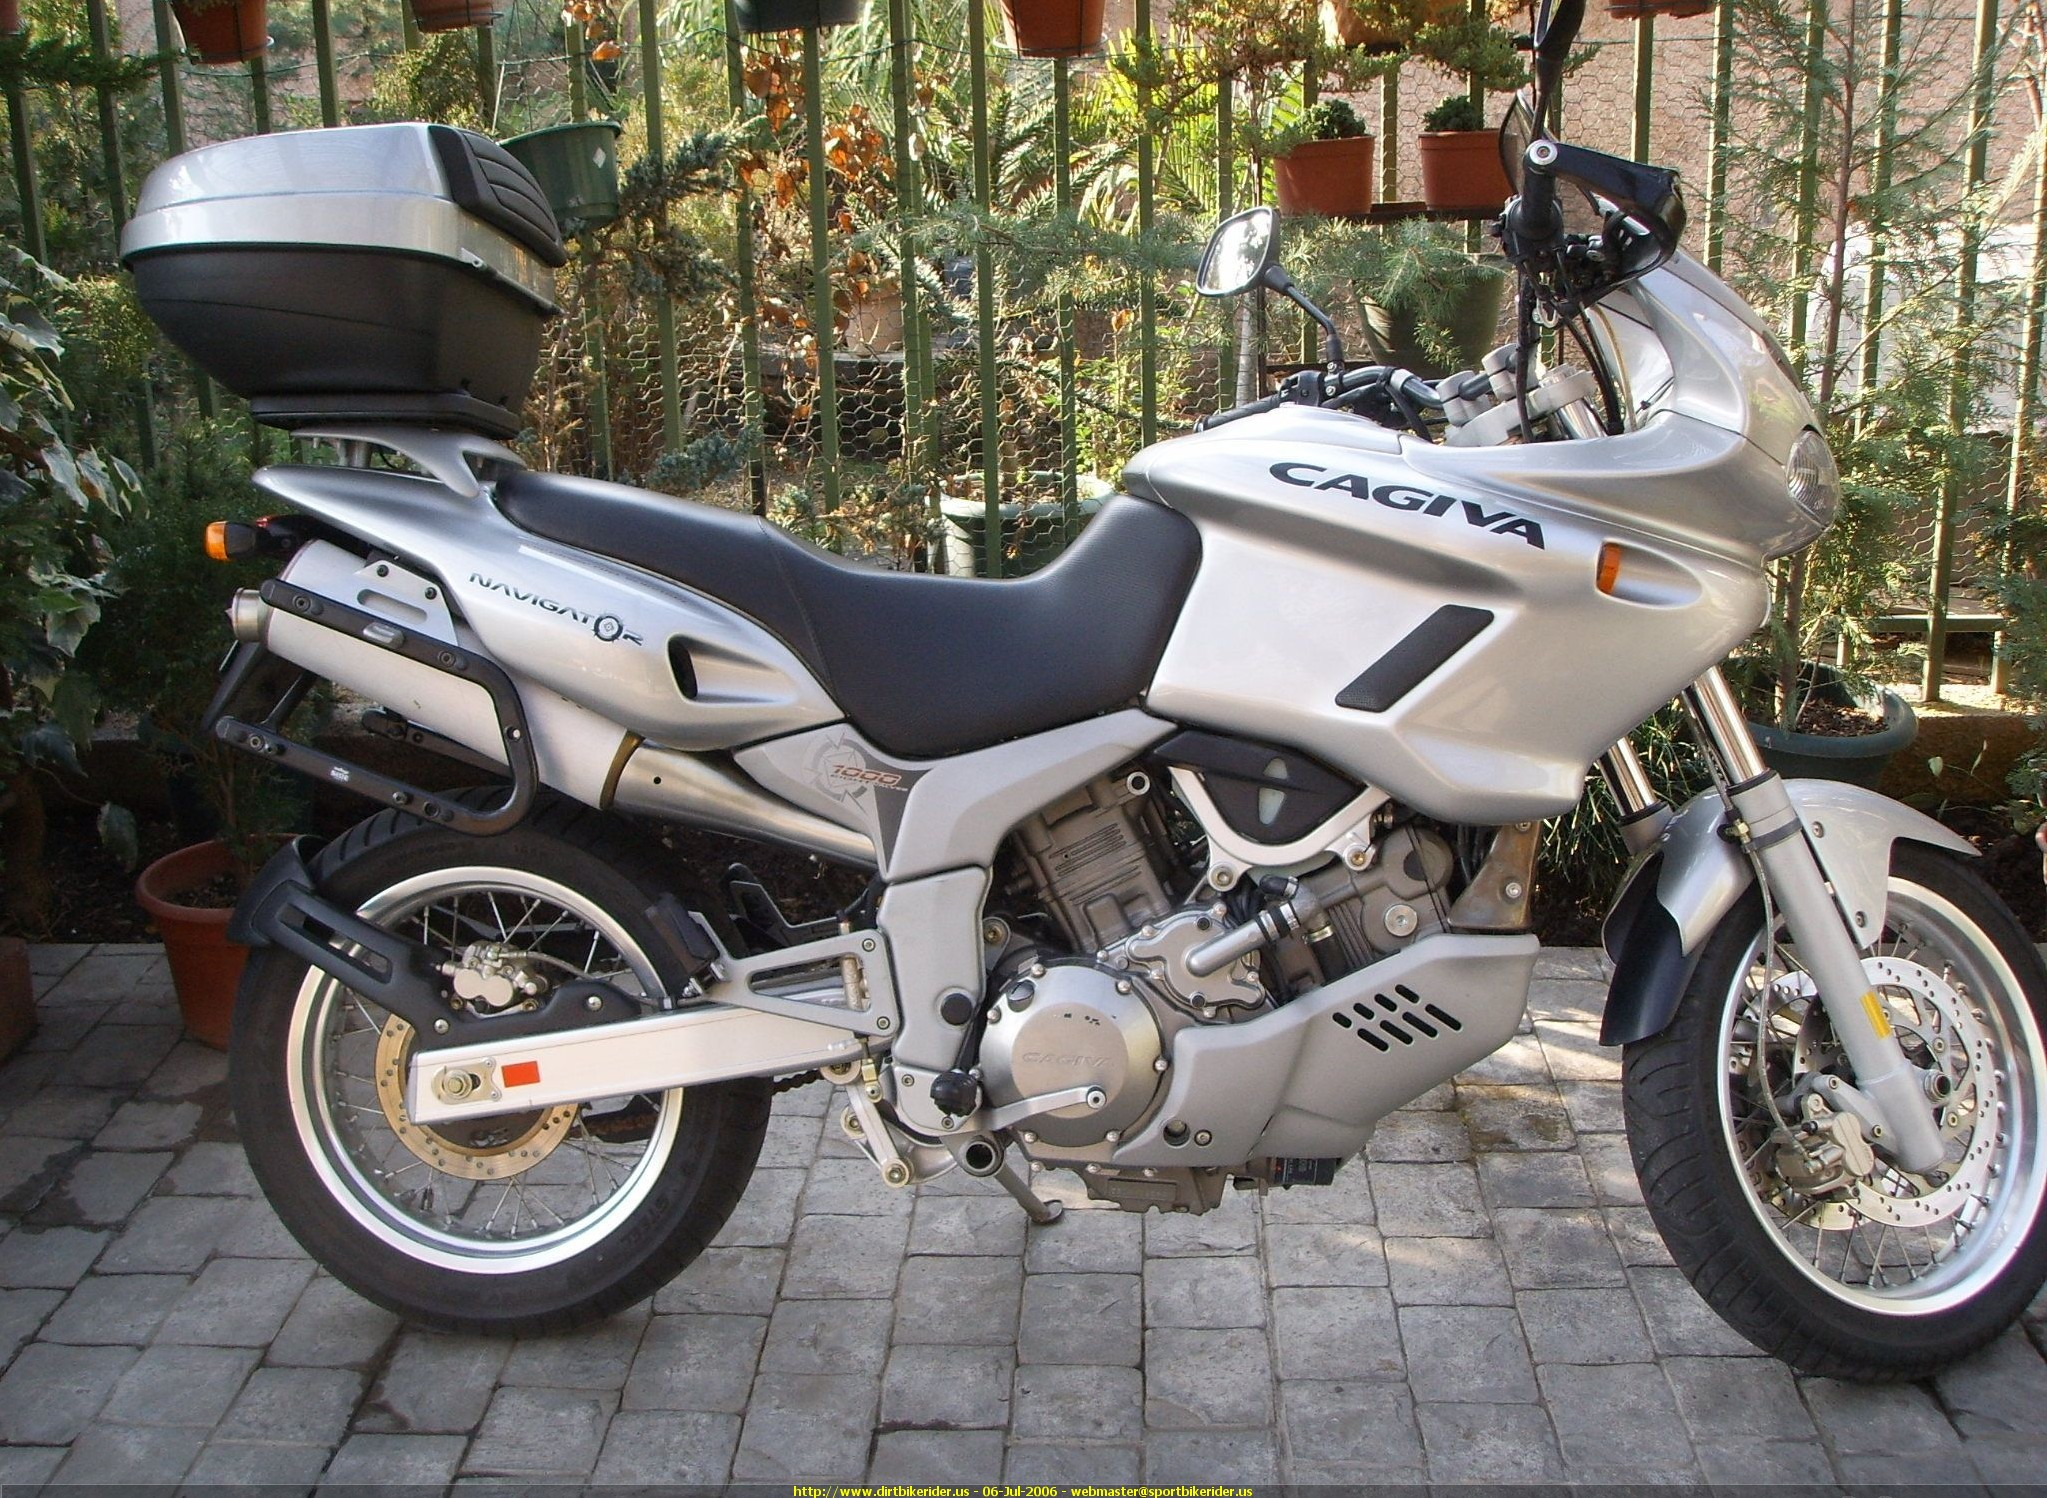 Cagiva Navigator 1000 2005 images #69692